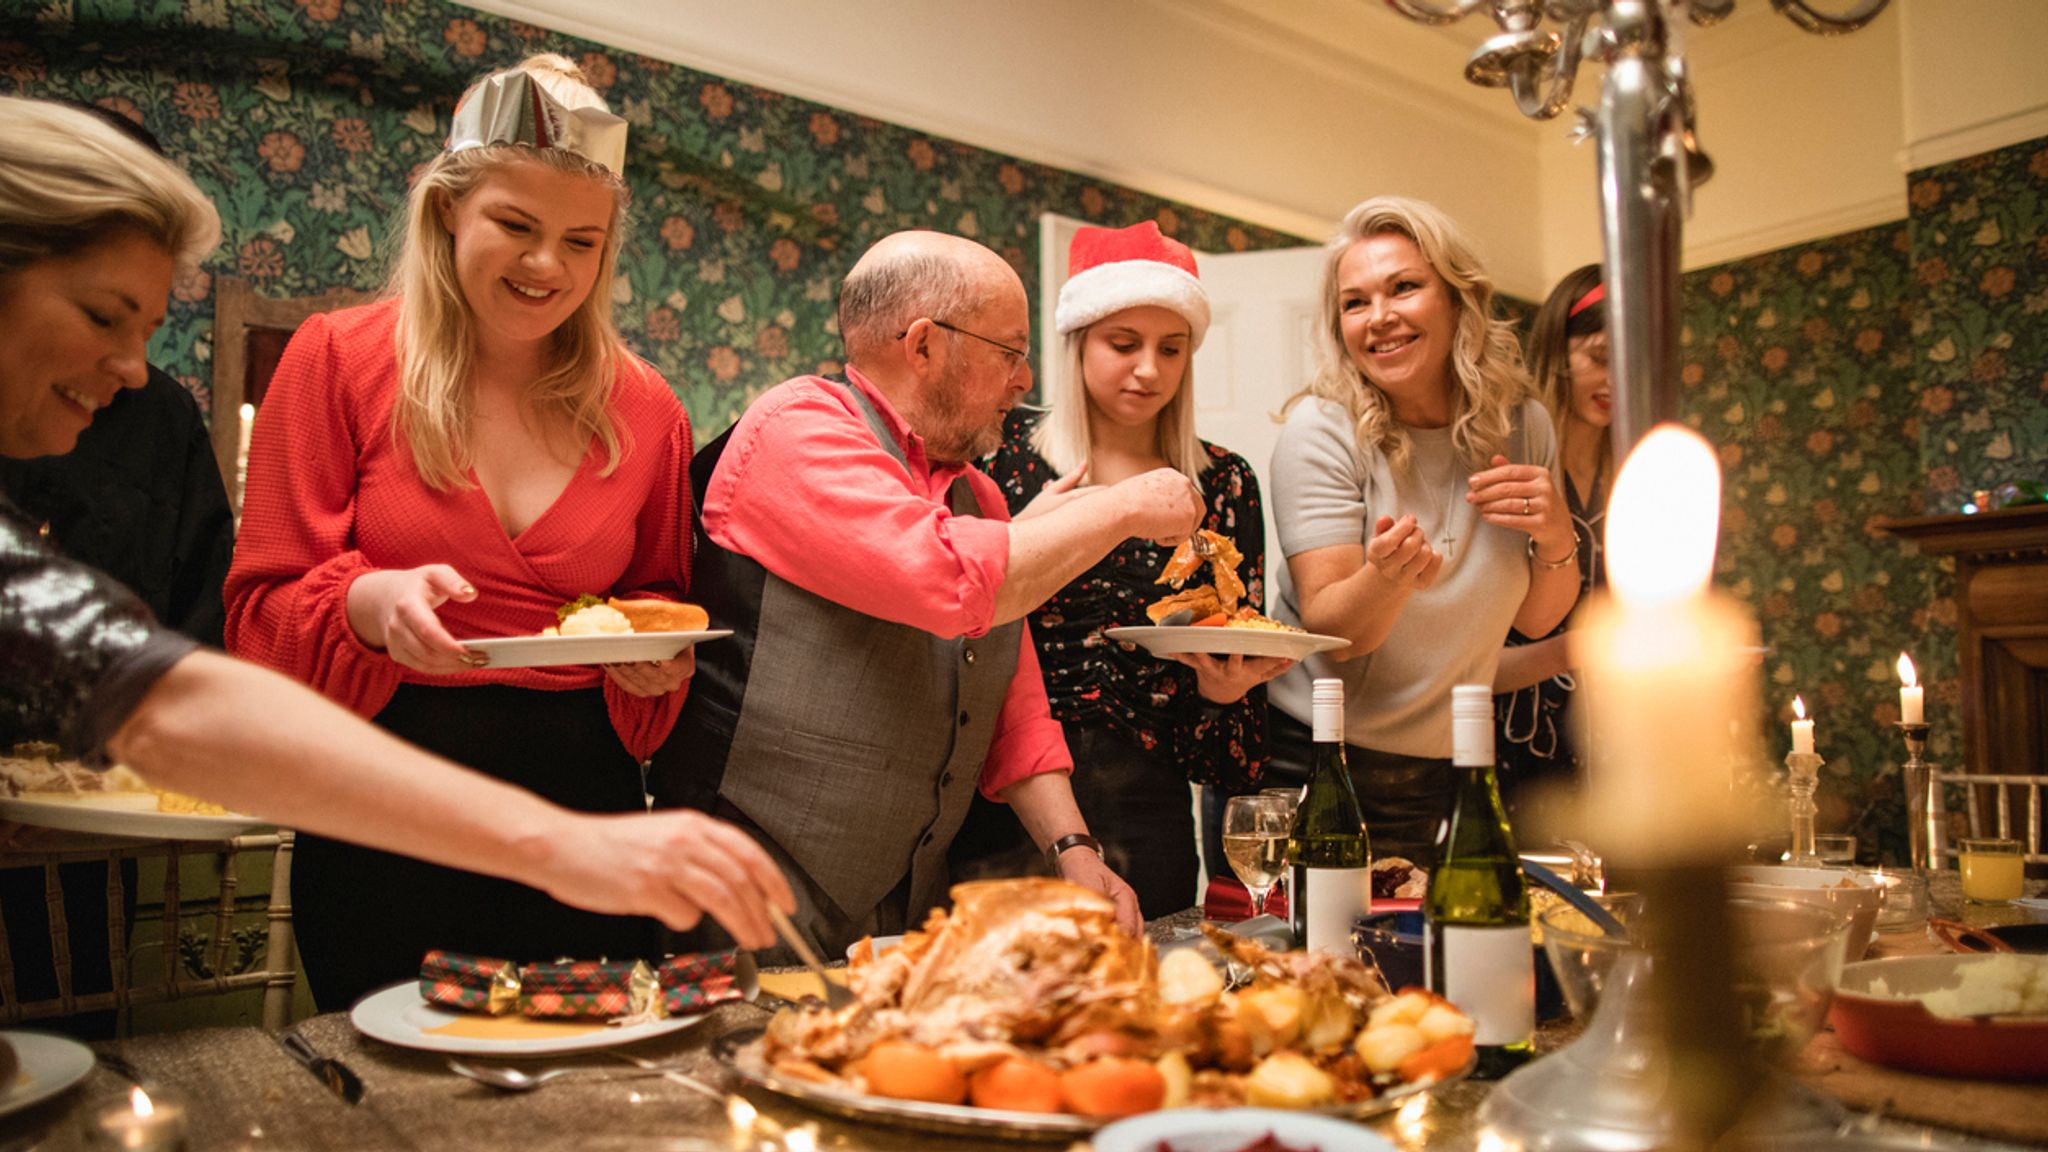 Families will hopefully be able to enjoy a more normal Christmas in 2021